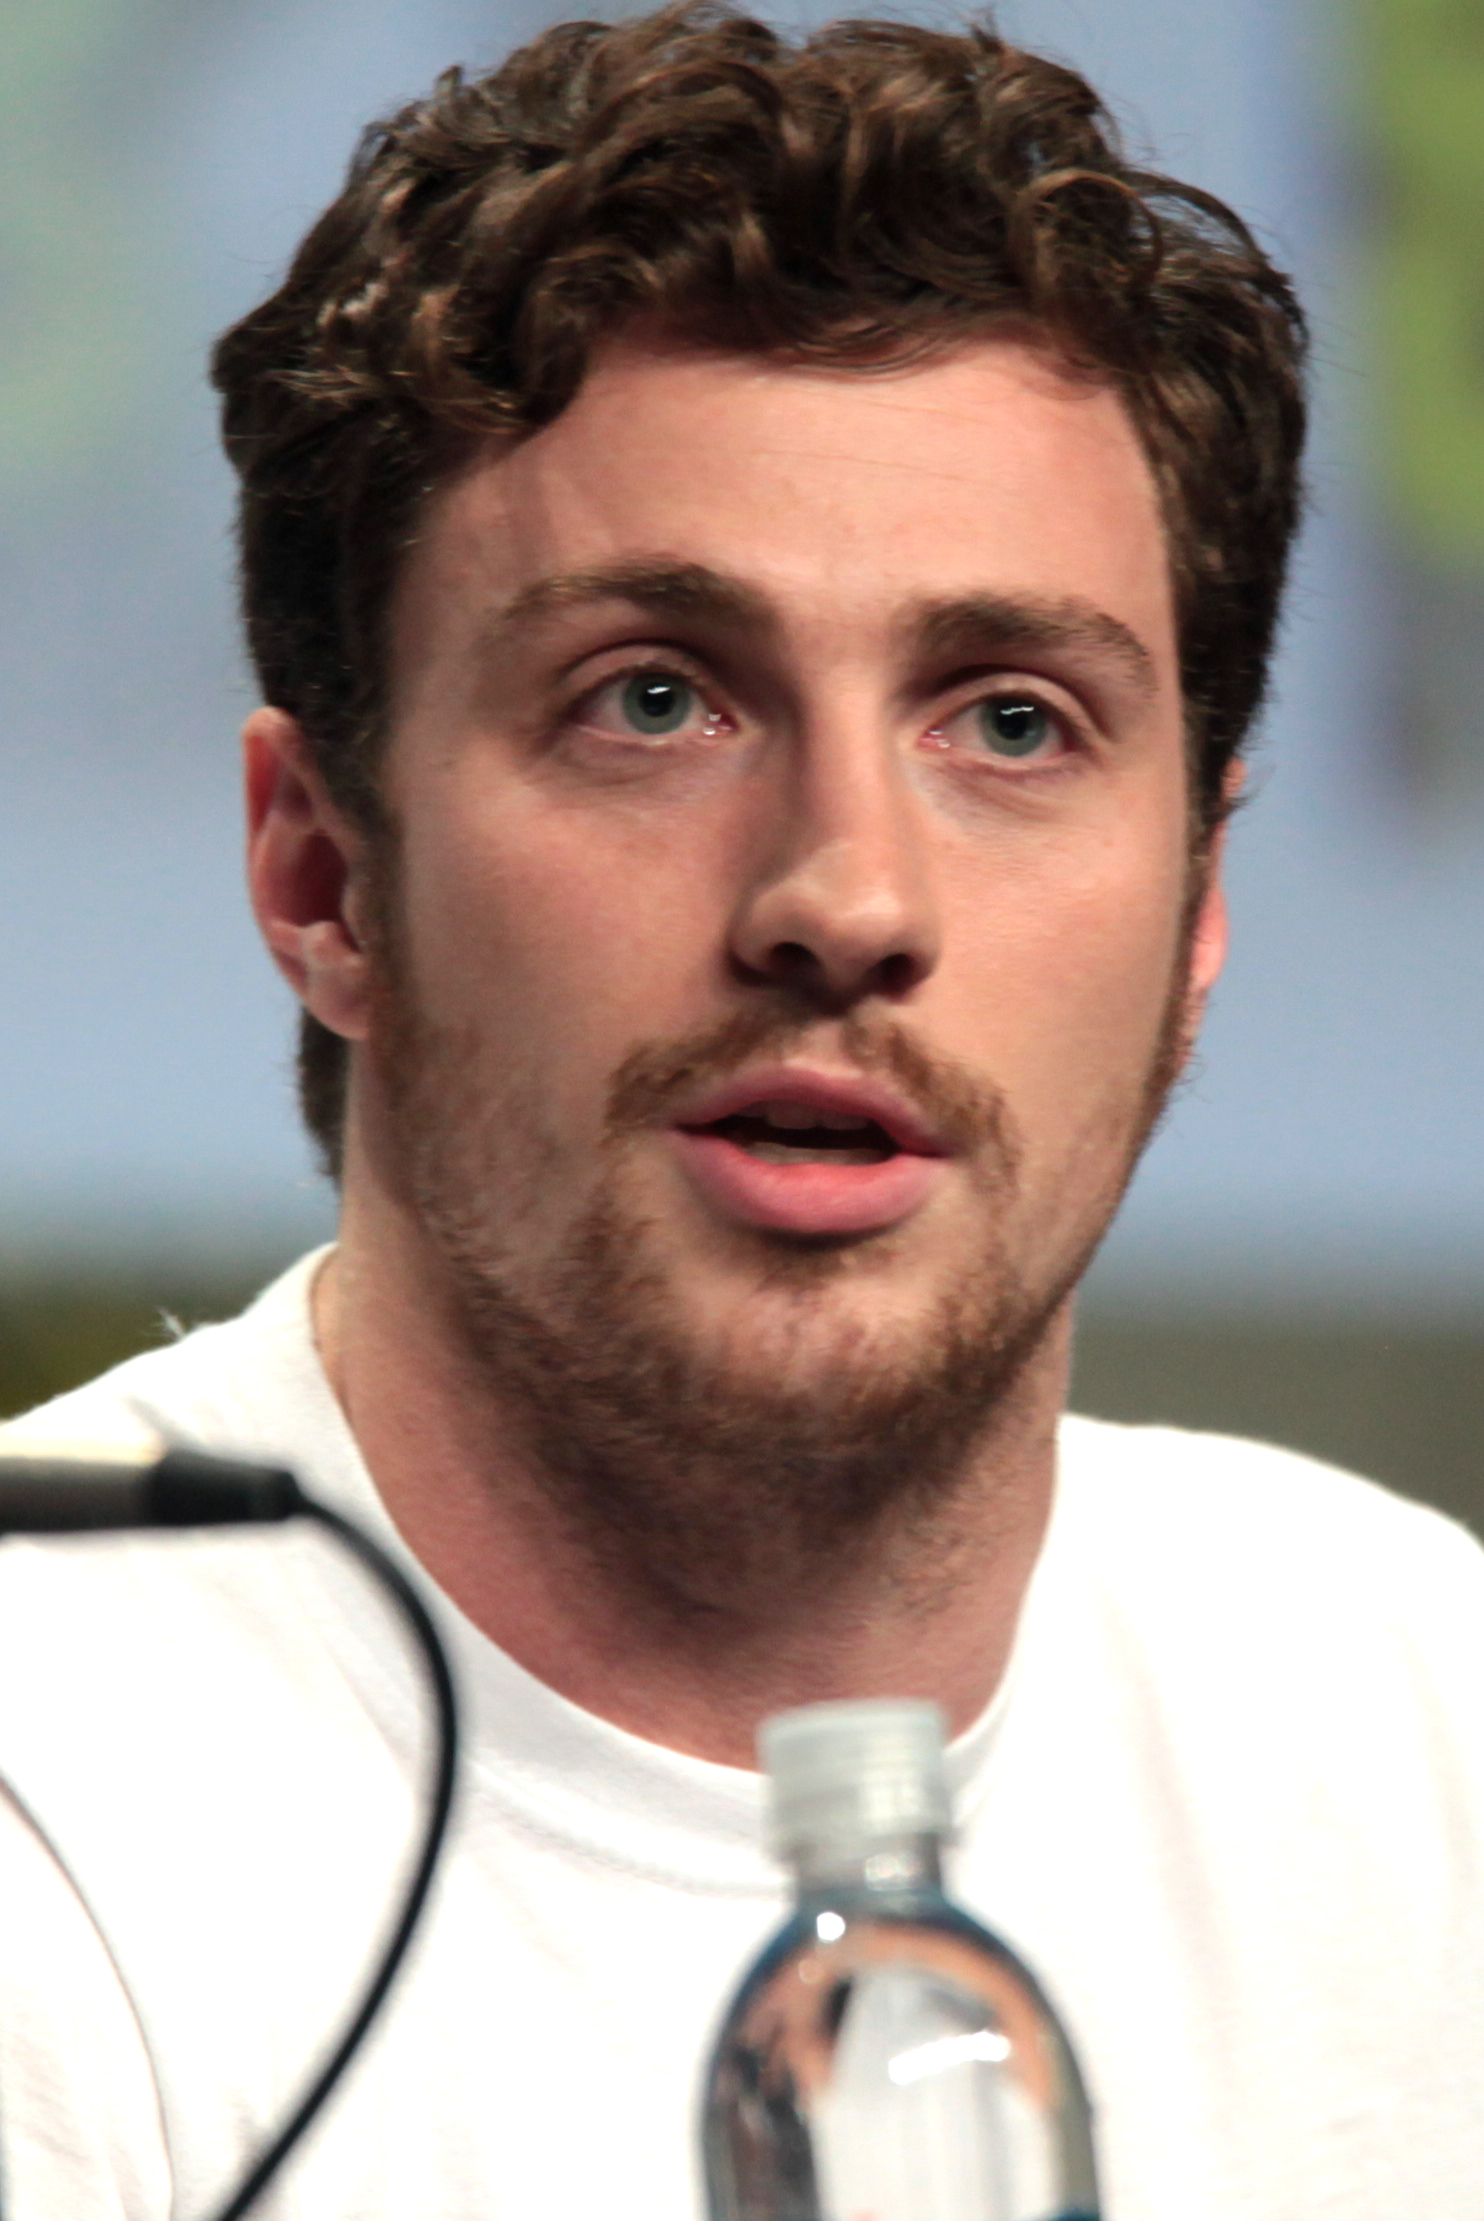 The 29-year old son of father (?) and mother(?) Aaron Taylor-Johnson in 2019 photo. Aaron Taylor-Johnson earned a 3.5 million dollar salary - leaving the net worth at 16 million in 2019